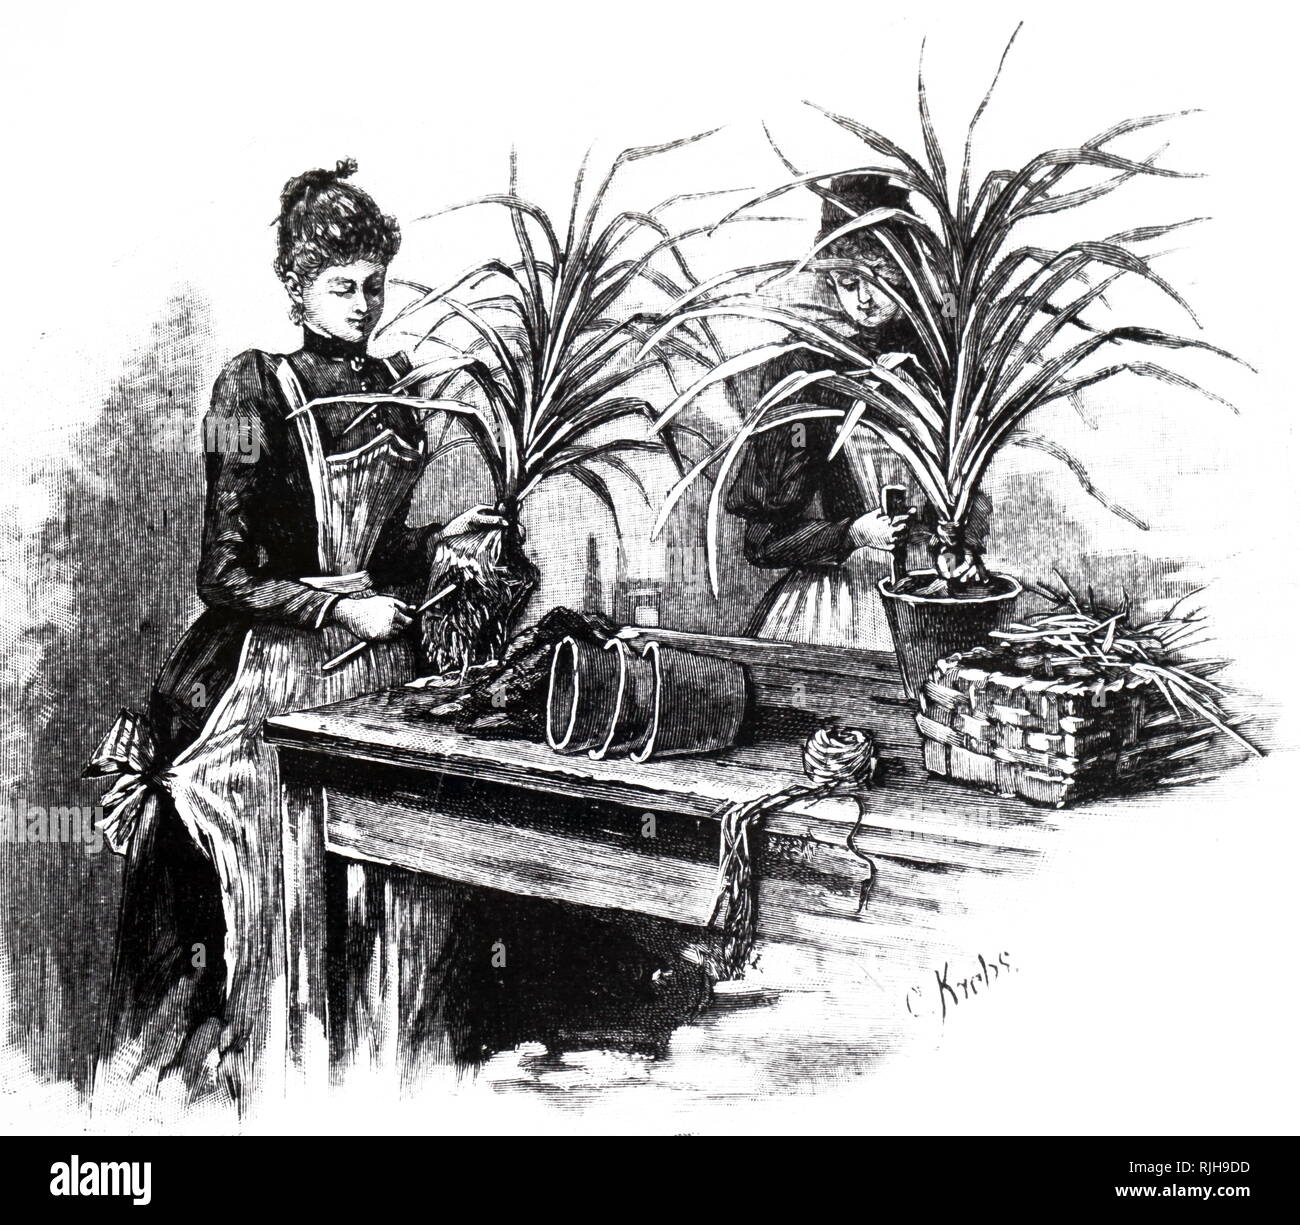 An engraving depicting a female gardener re-potting. At this date, establishments were being set up in France, Germany and Britain to give women sound training which would enable them to earn a living as market gardeners or as gardeners in private employment. Dated 19th century - Stock Image